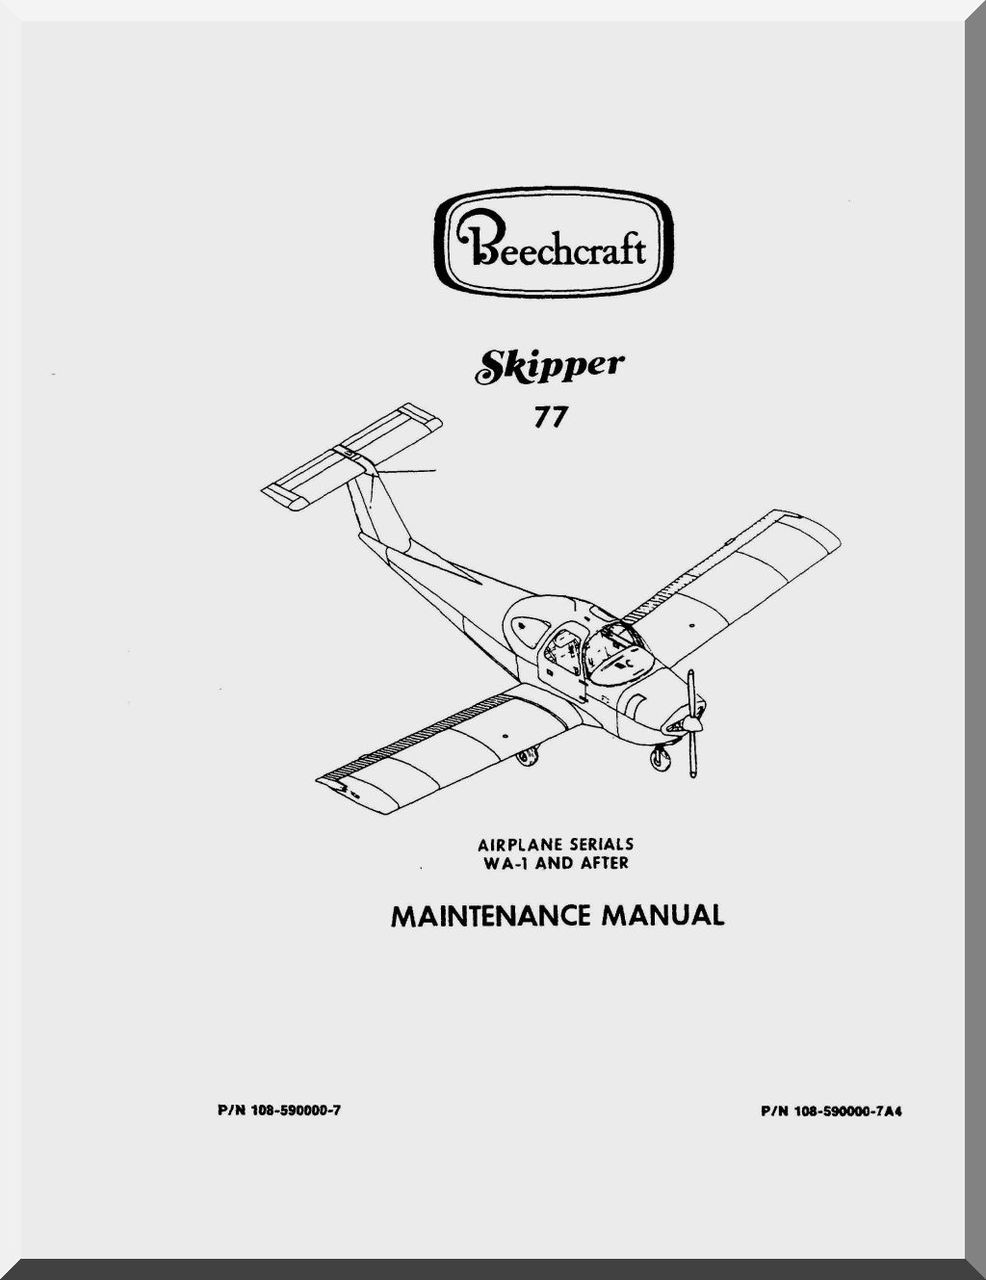 Beechcraft Skipper 77 Aircraft Maintenance Manual